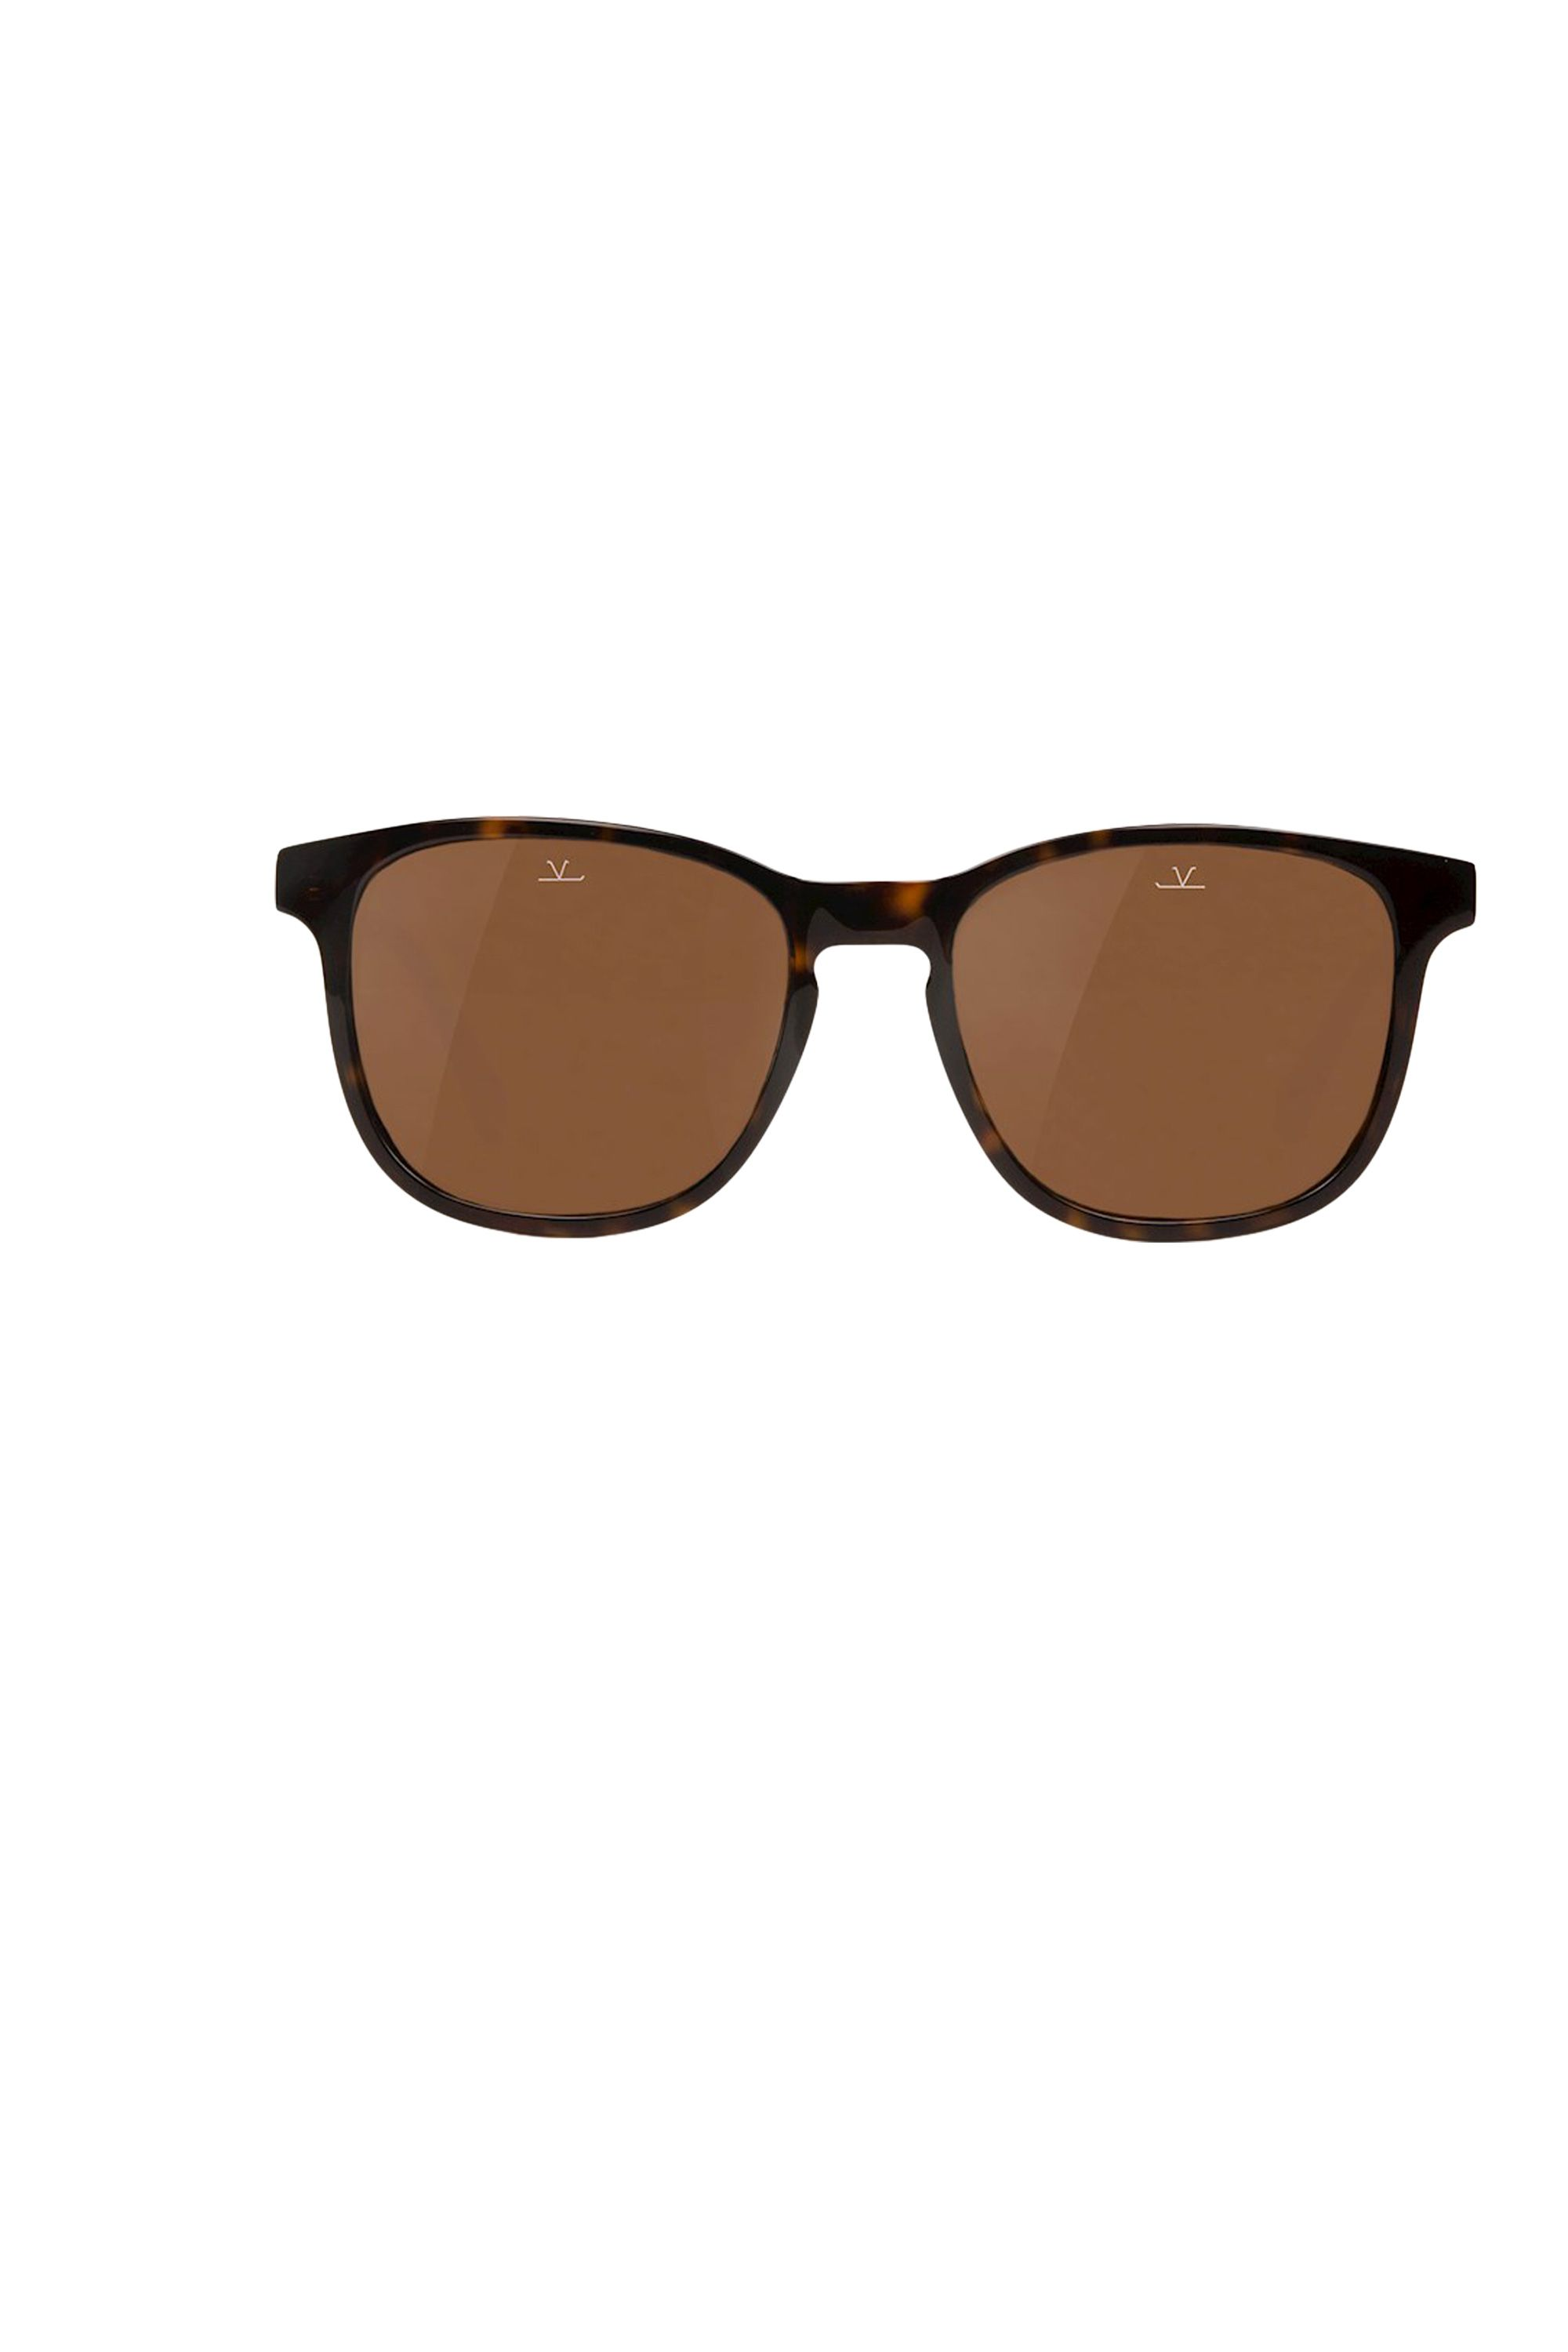 "<p>A classic pair of sunglasses is something you'll have forever. Assuming you don't lose them, that is. These tortoise frames are a step away from the usual wayfarer vibes, but just as stylish. <br></p><p> 	<em data-redactor-tag=""em"">Square District Sunglasses ($230) by Vuarnet, <a href=""http://vuarnet.com/us/collections/210-square-district"" target=""_blank"" data-tracking-id=""recirc-text-link"">vuarnet.com</a></em></p>"